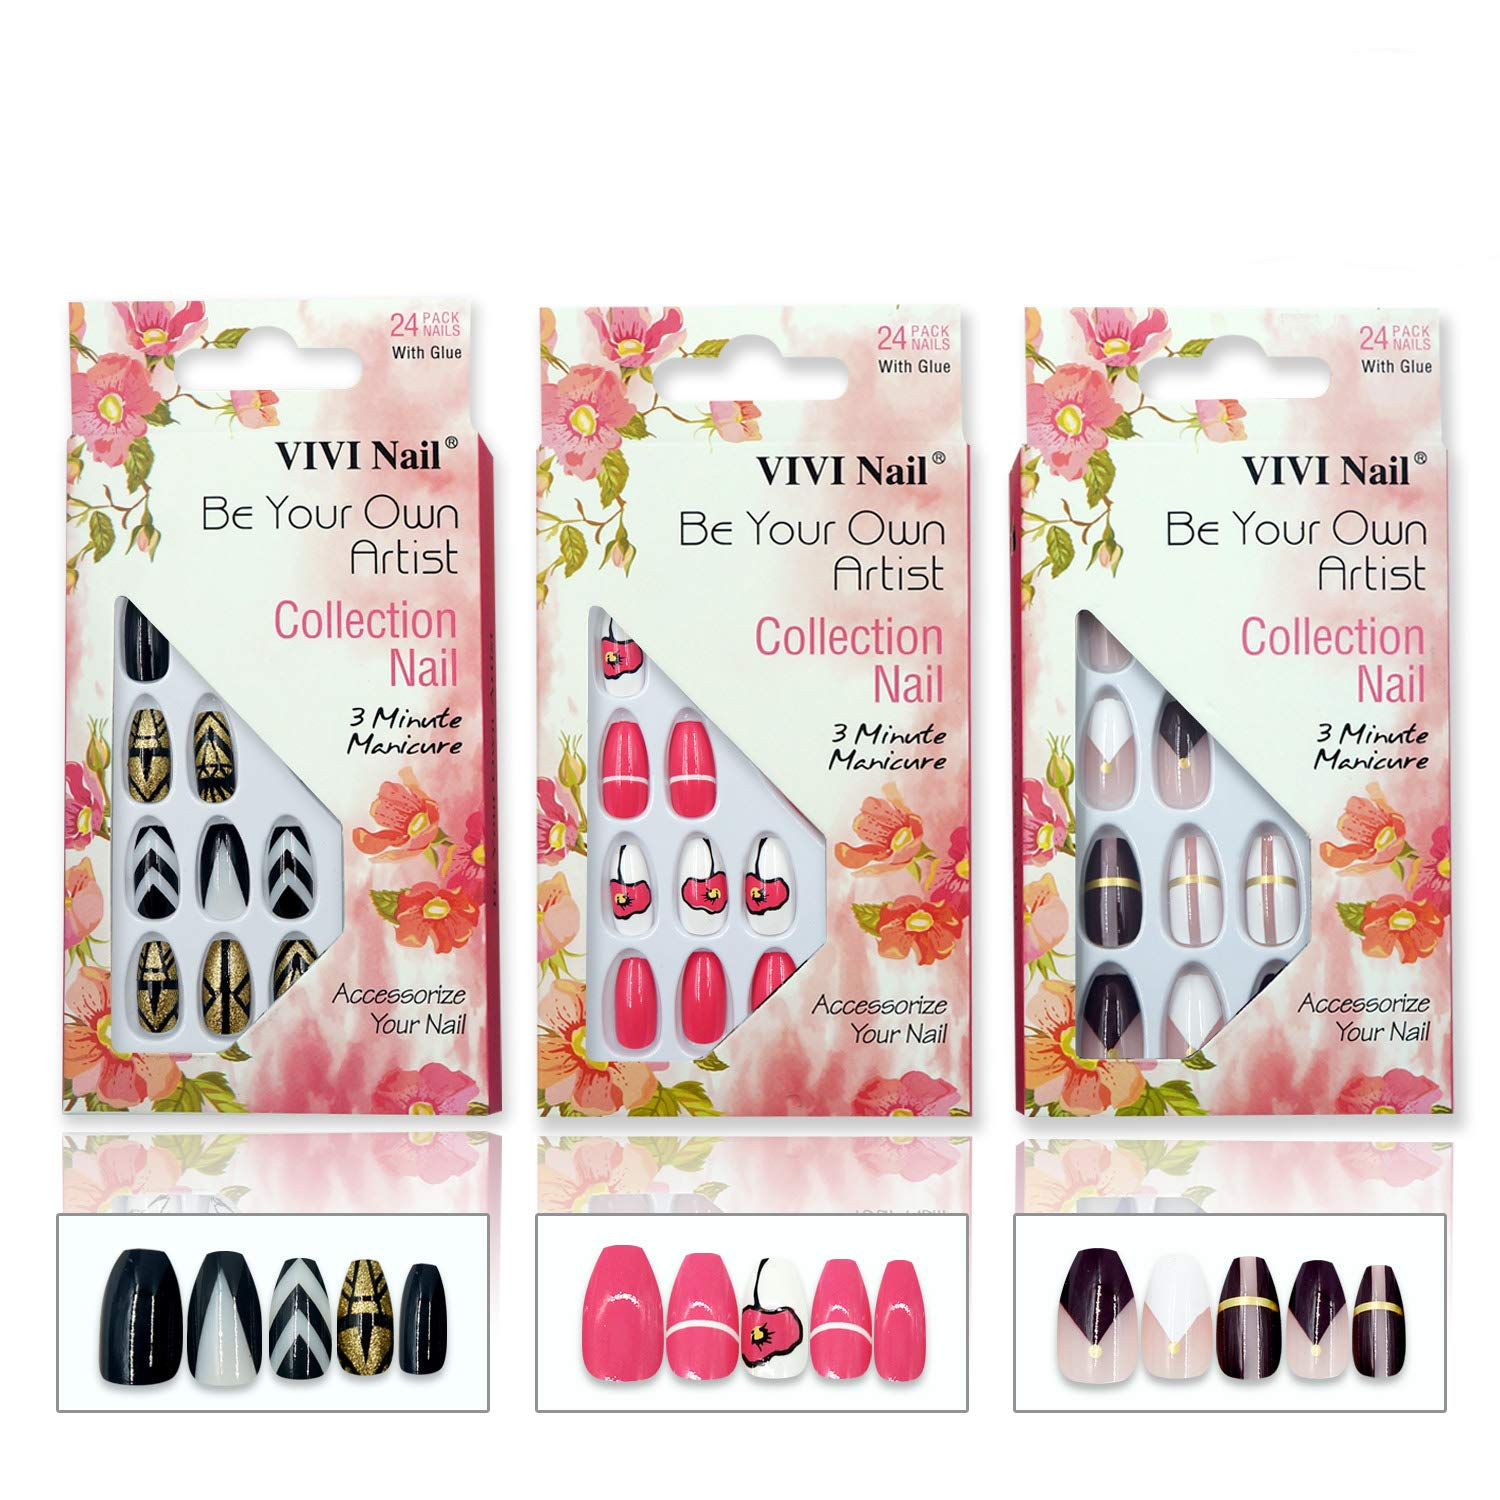 Coffin False Nails 3 Pack Ballerina Fake Nail Art Tips by VIVI NAIL